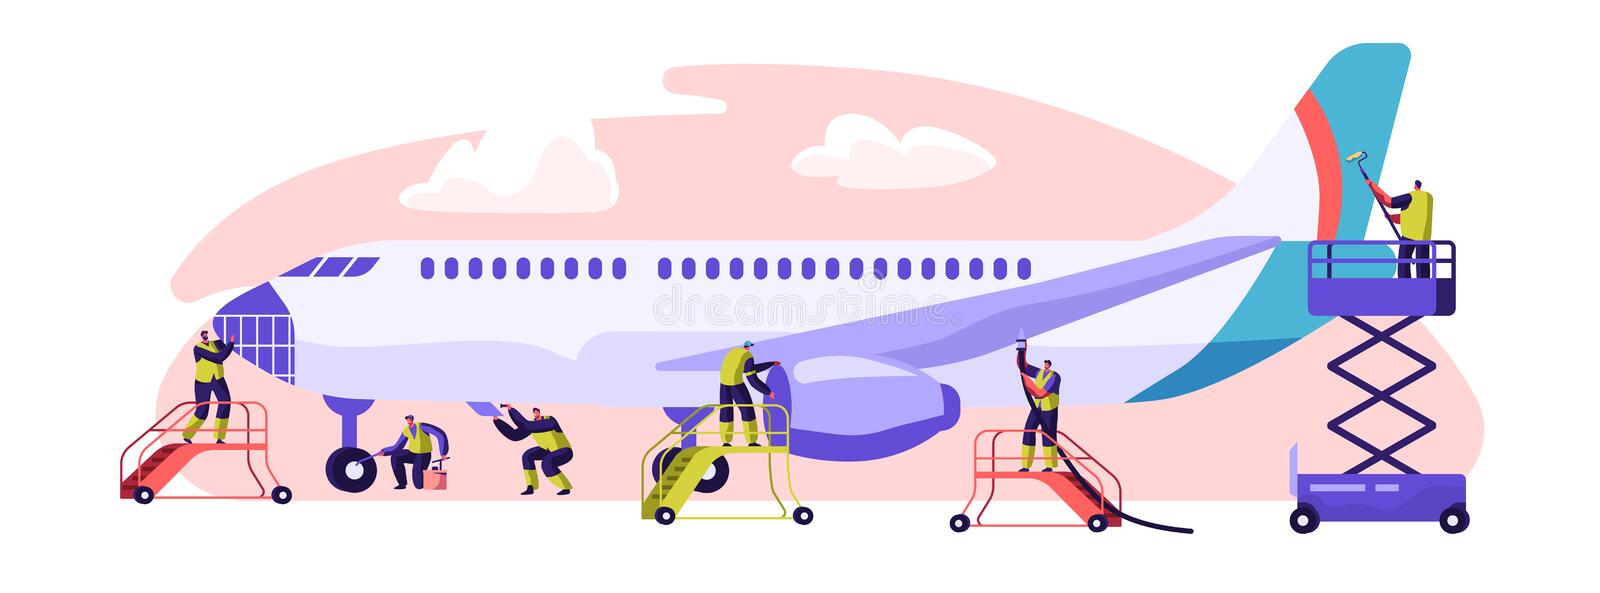 Plane Service Banner. Aircraft Maintenance, Inspection and Repair. Performance of Task Required to Ensure Continuing Airworthiness vector illustration